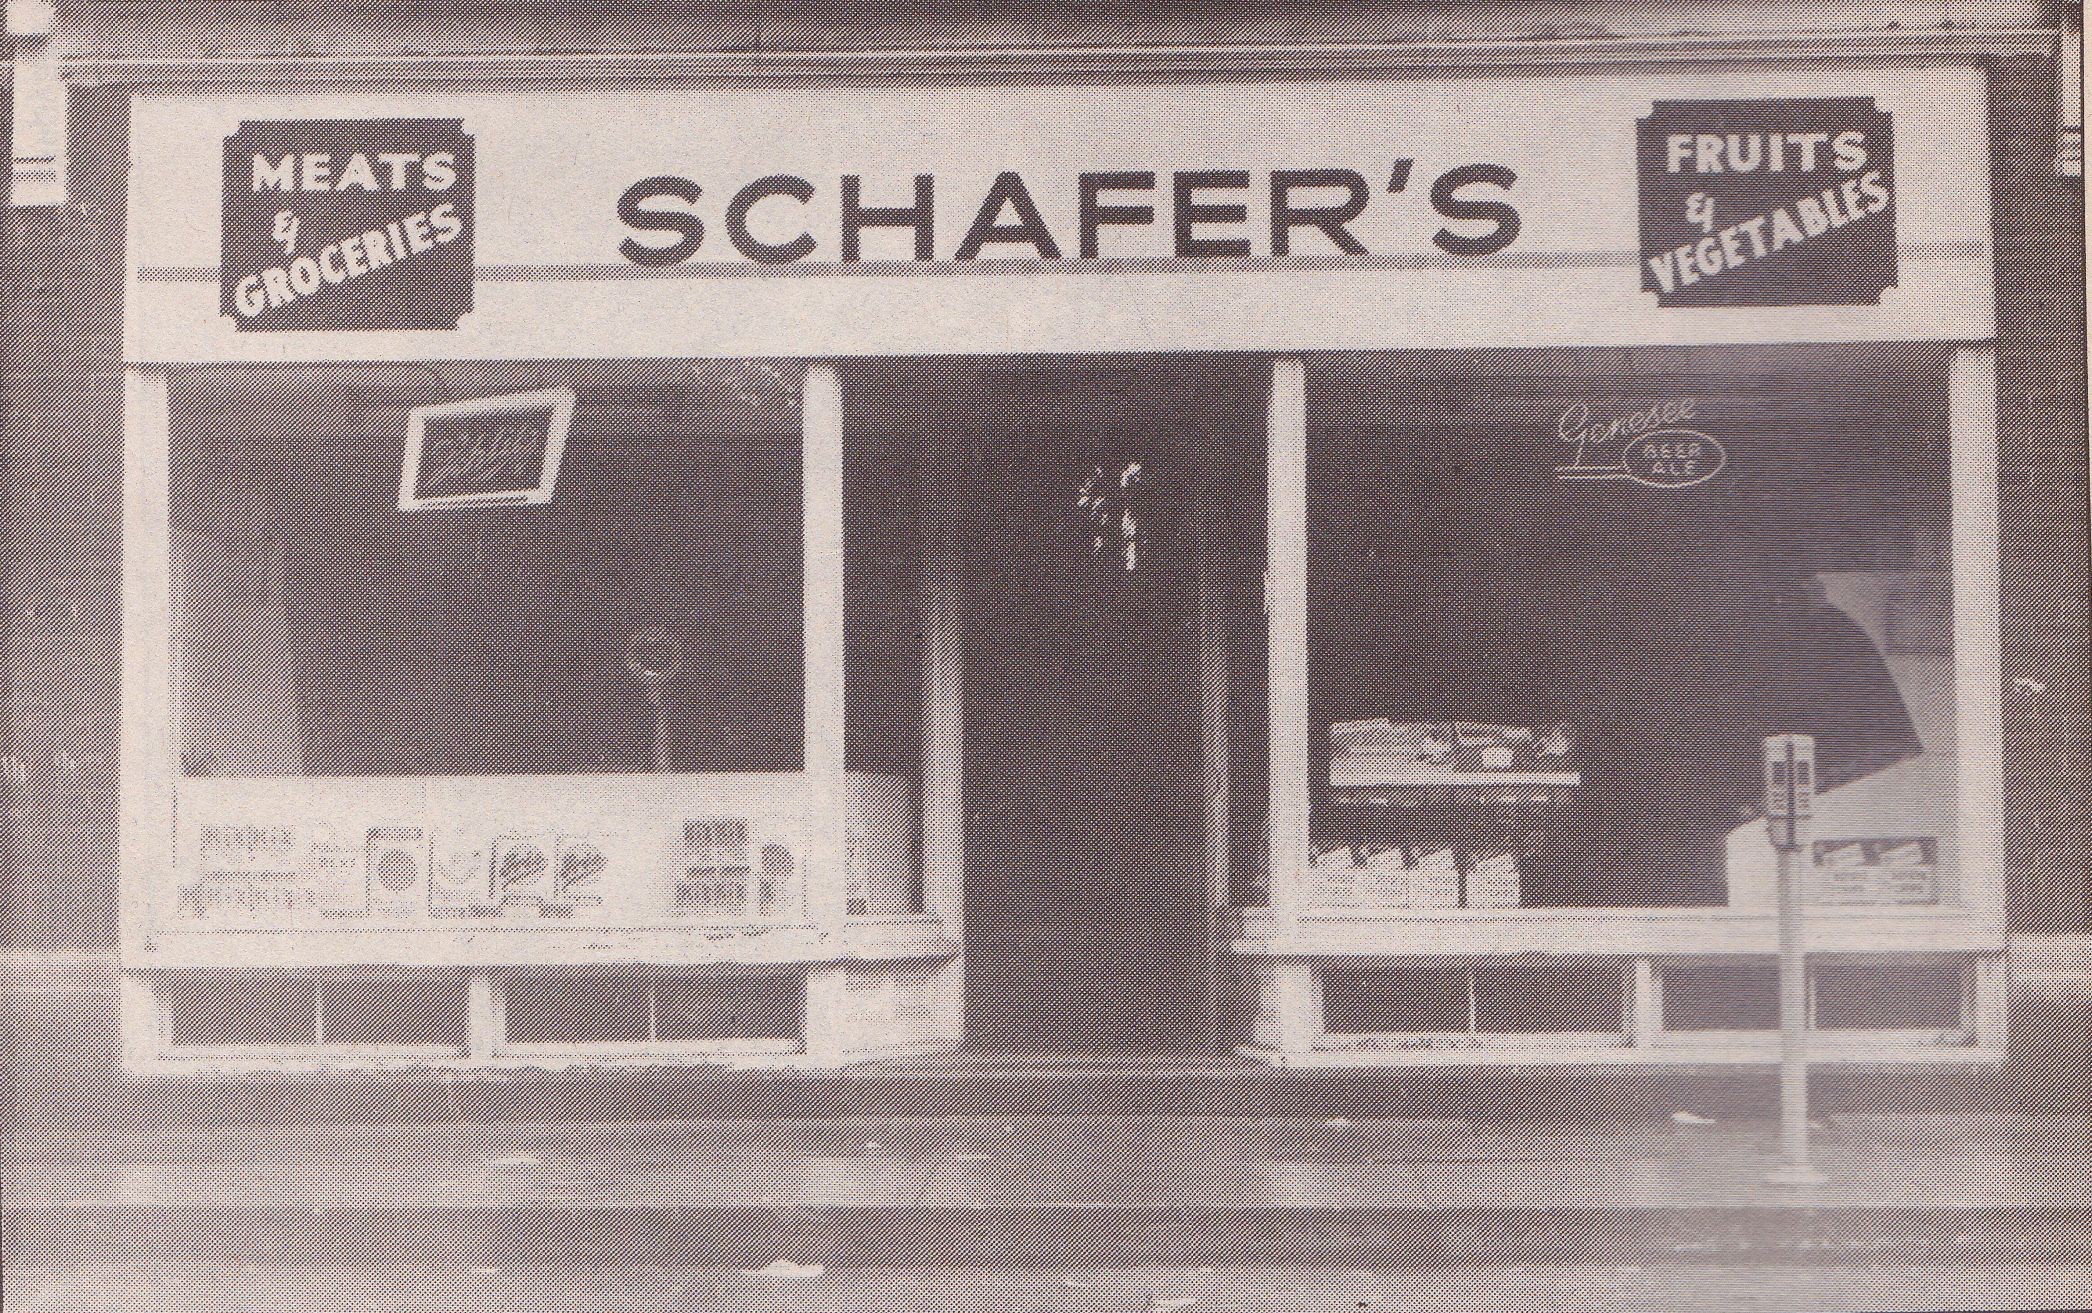 George Schafer operated Schafer's Market on James Street in Clayton from the early 1900's to 1968. It then became the Nutshell.